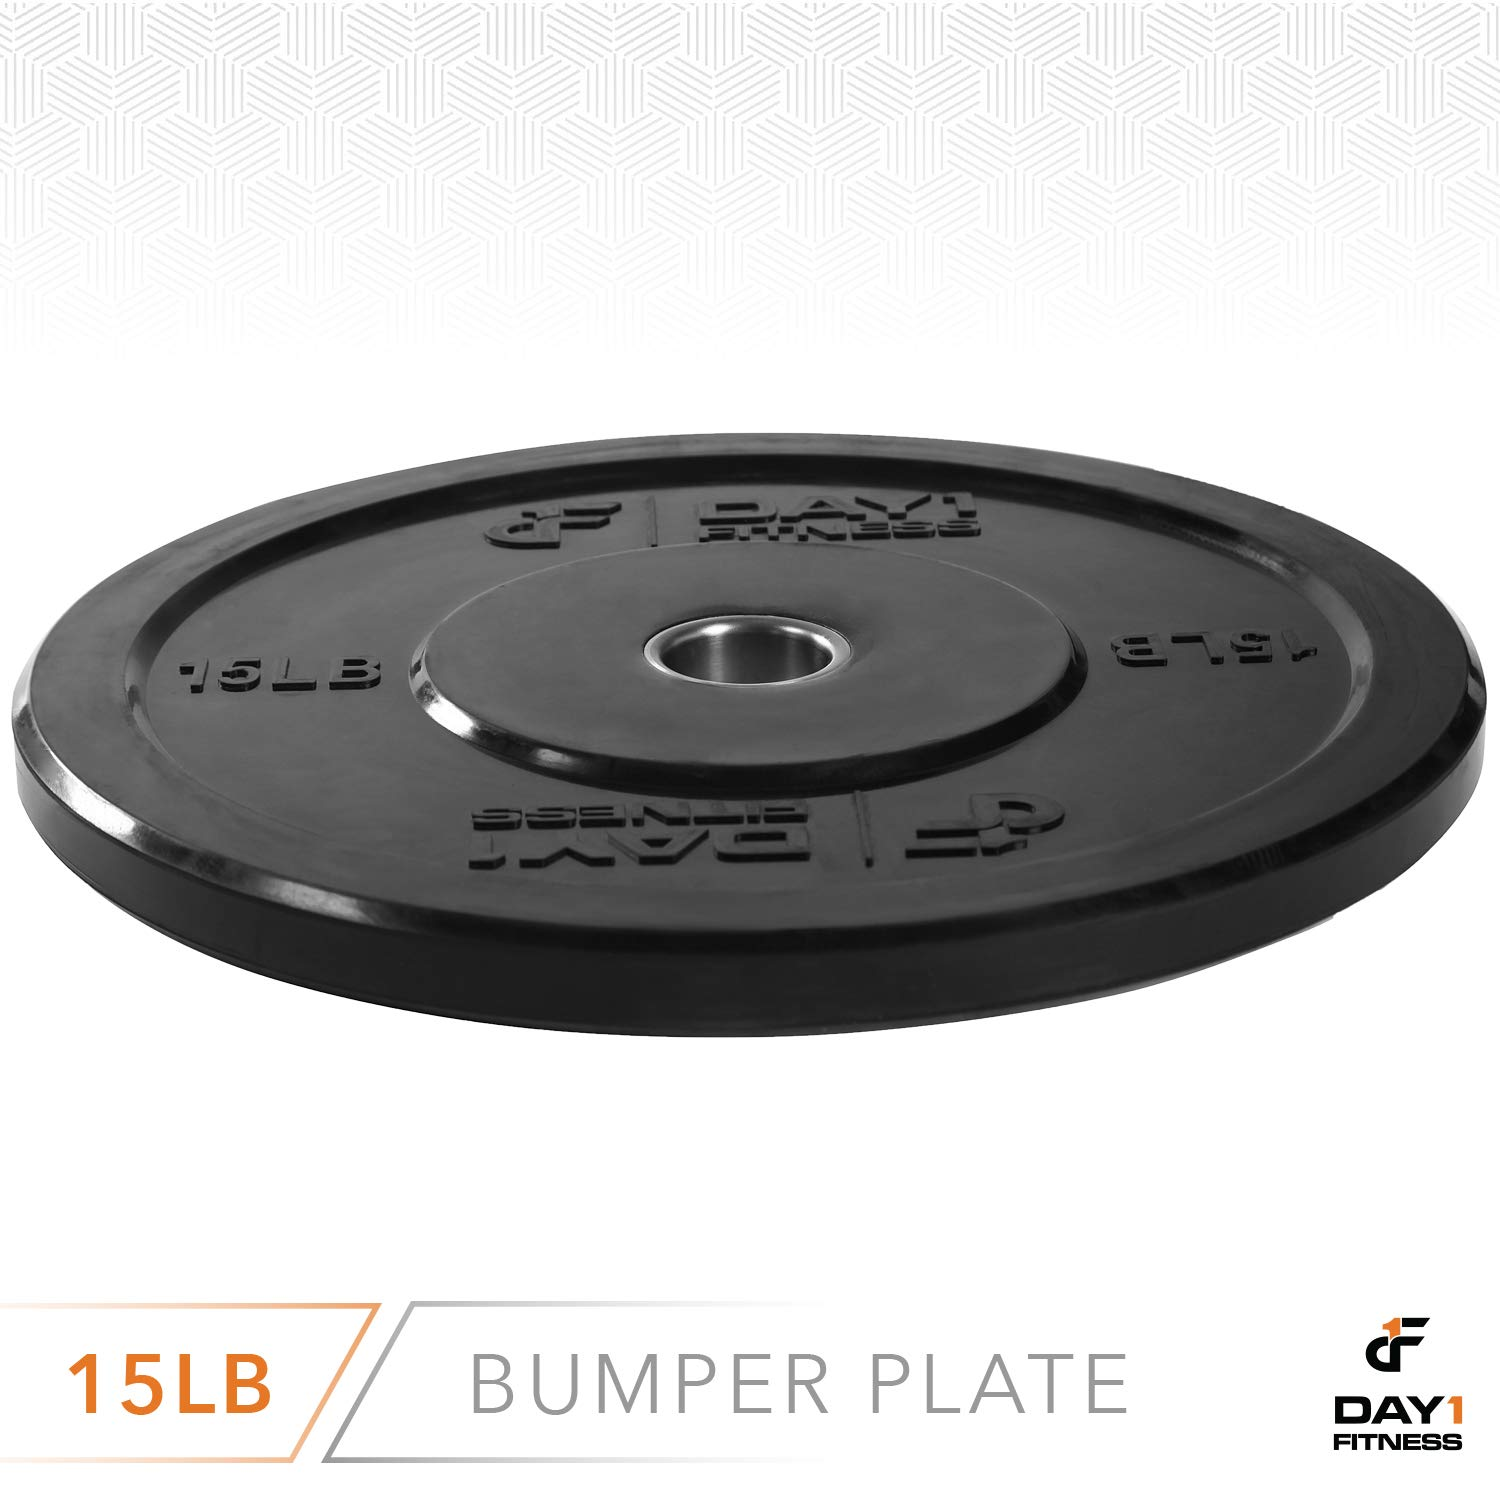 "Day 1 Fitness Olympic Bumper Weighted Plate 2"" for Barbells, Bars – 15 lb Single Plate - Shock-Absorbing, Minimal Bounce Steel Weights with Bumpers for Lifting, Strength Training, and Working Out by Day 1 Fitness (Image #3)"